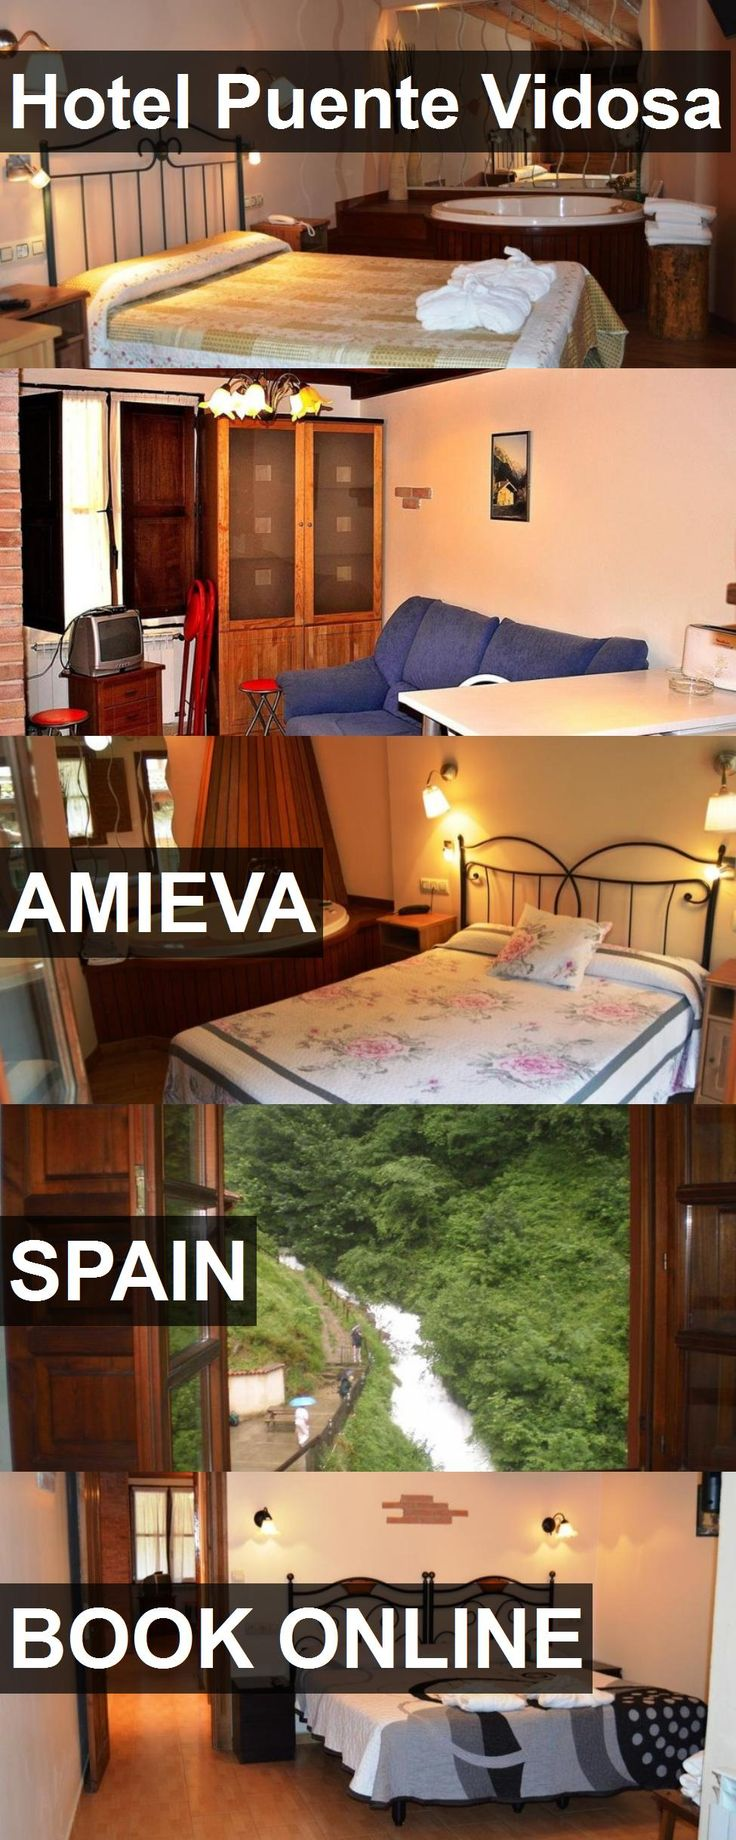 Hotel Puente Vidosa in Amieva, Spain. For more information, photos, reviews and best prices please follow the link. #Spain #Amieva #travel #vacation #hotel